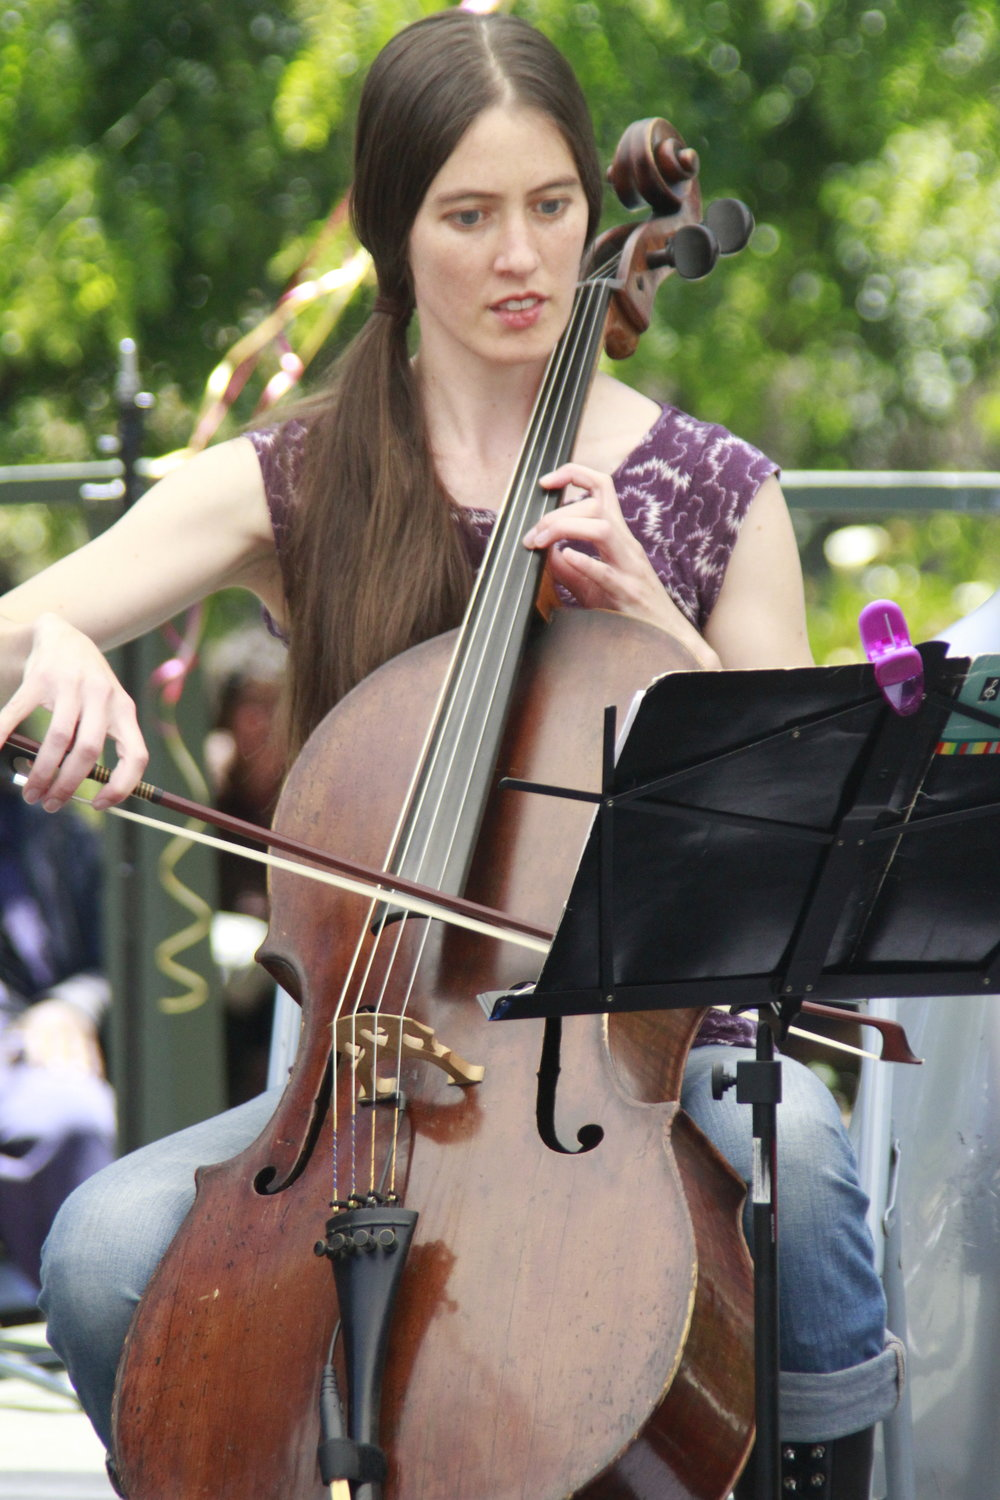 Celloist_MG_2039.JPG